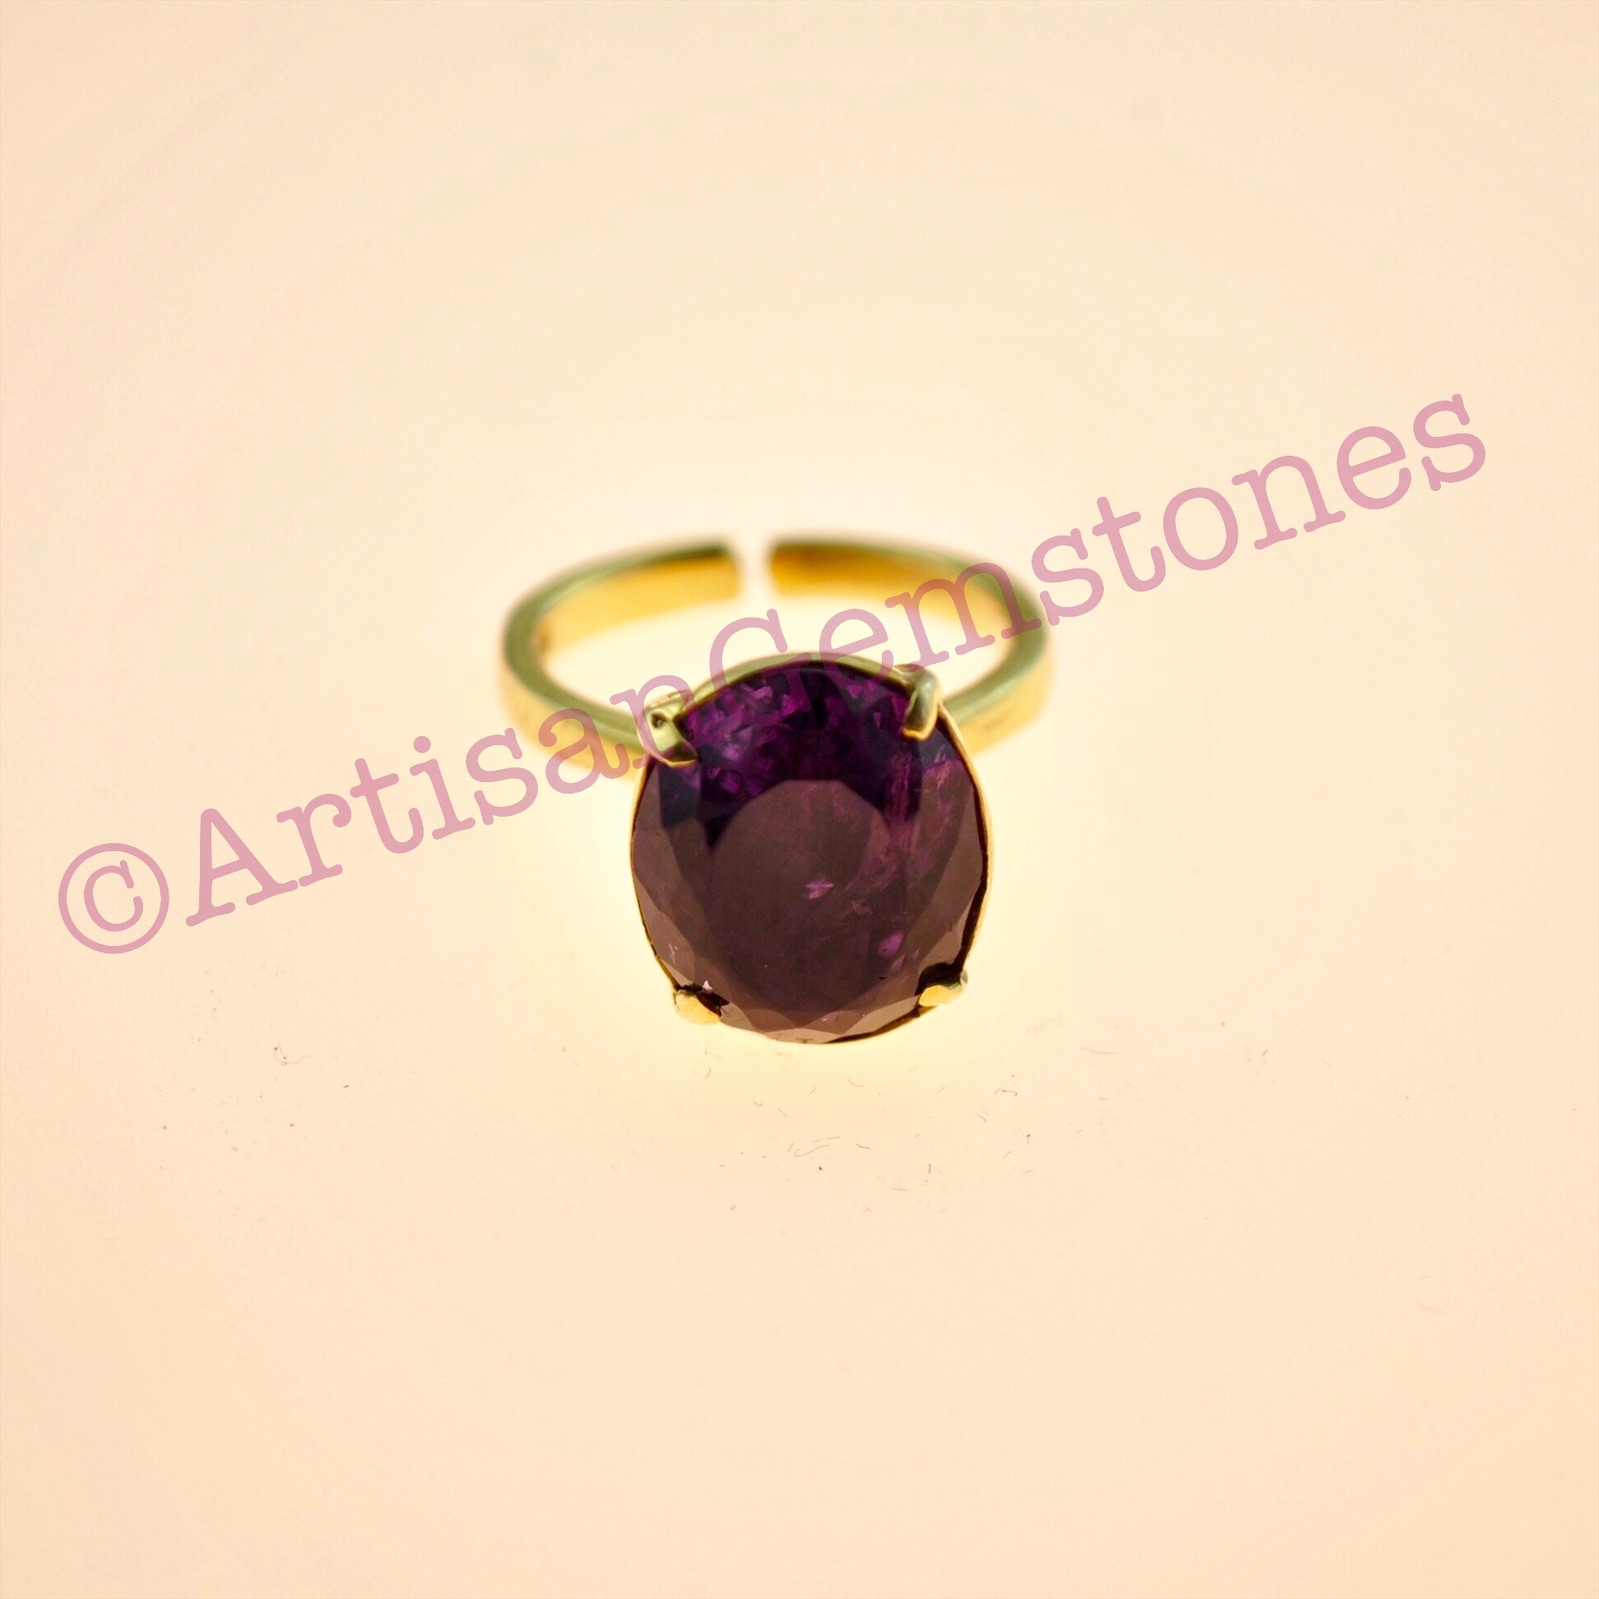 Oval, Amethyst 925 silver 22k Gold plated adjustable ring